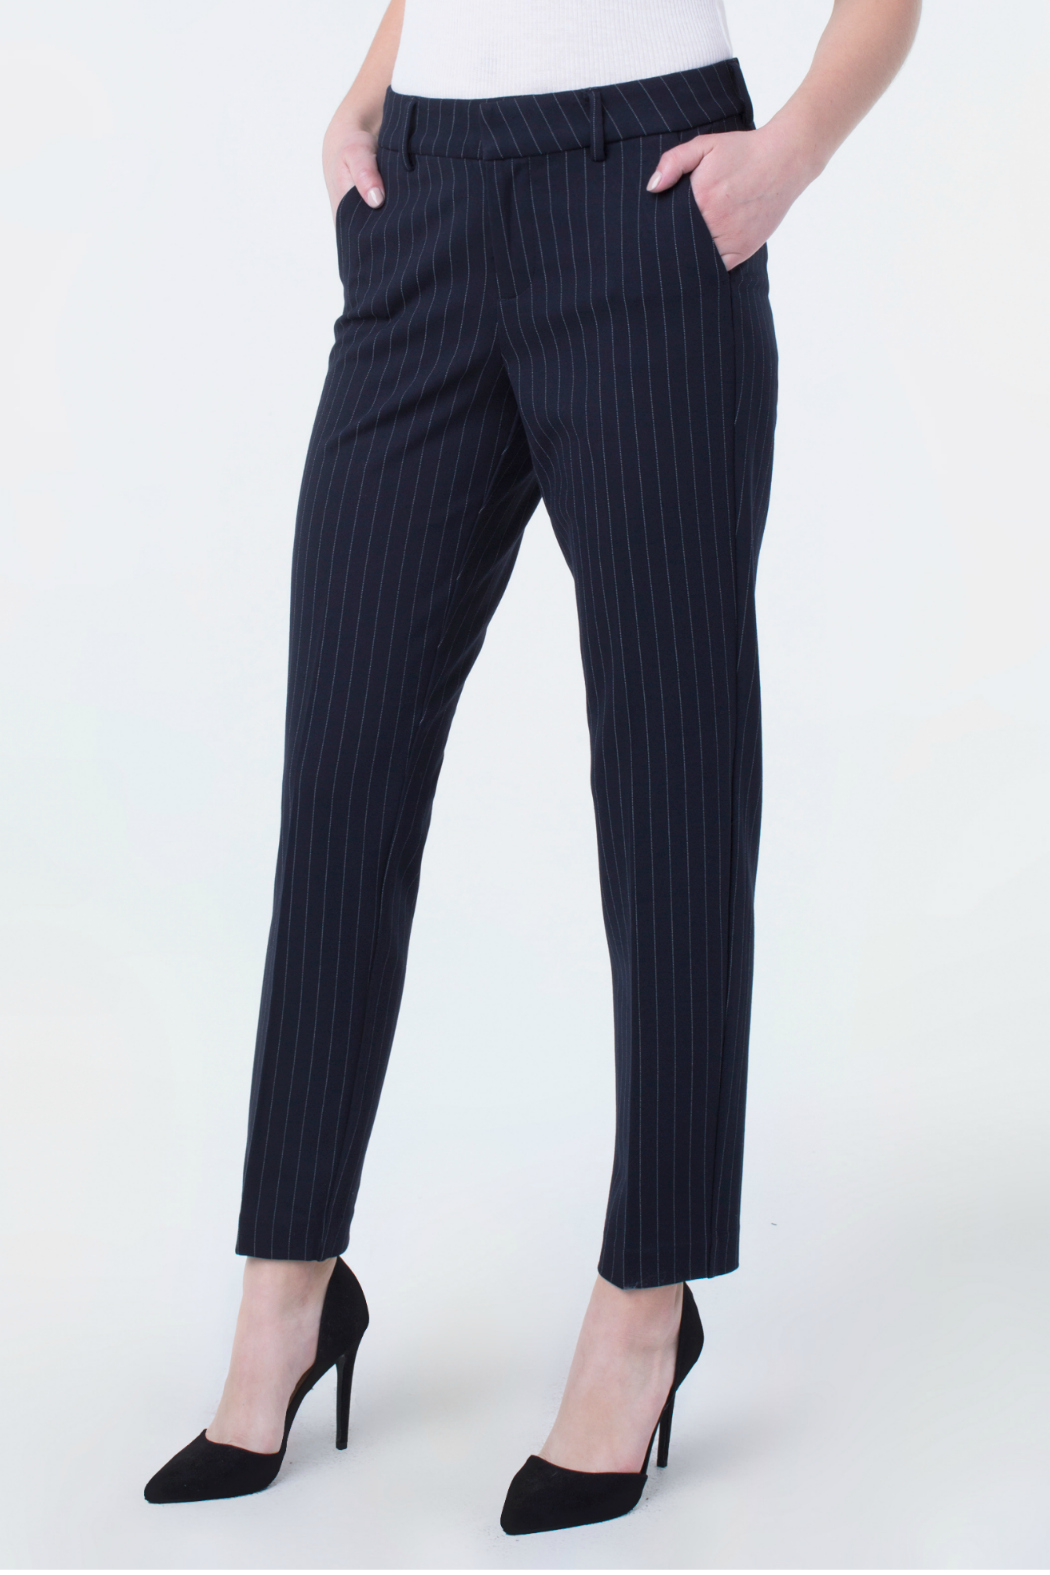 Liverpool Jeans Company Kelsey Trouser 29 From New York By Gado Gado Shoptiques